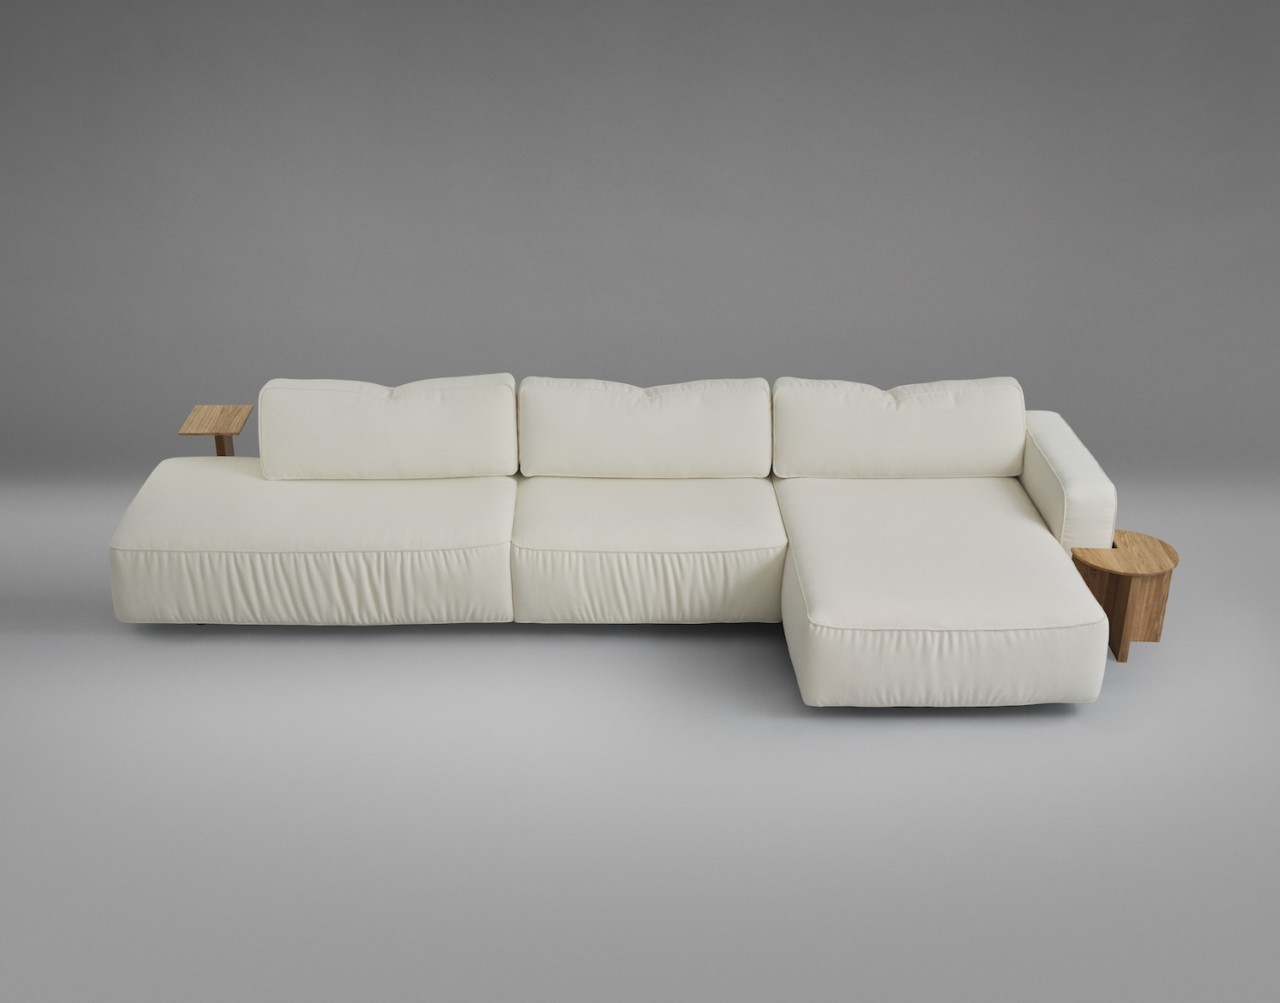 Supersoft Modular Sofa by Note Design Studio